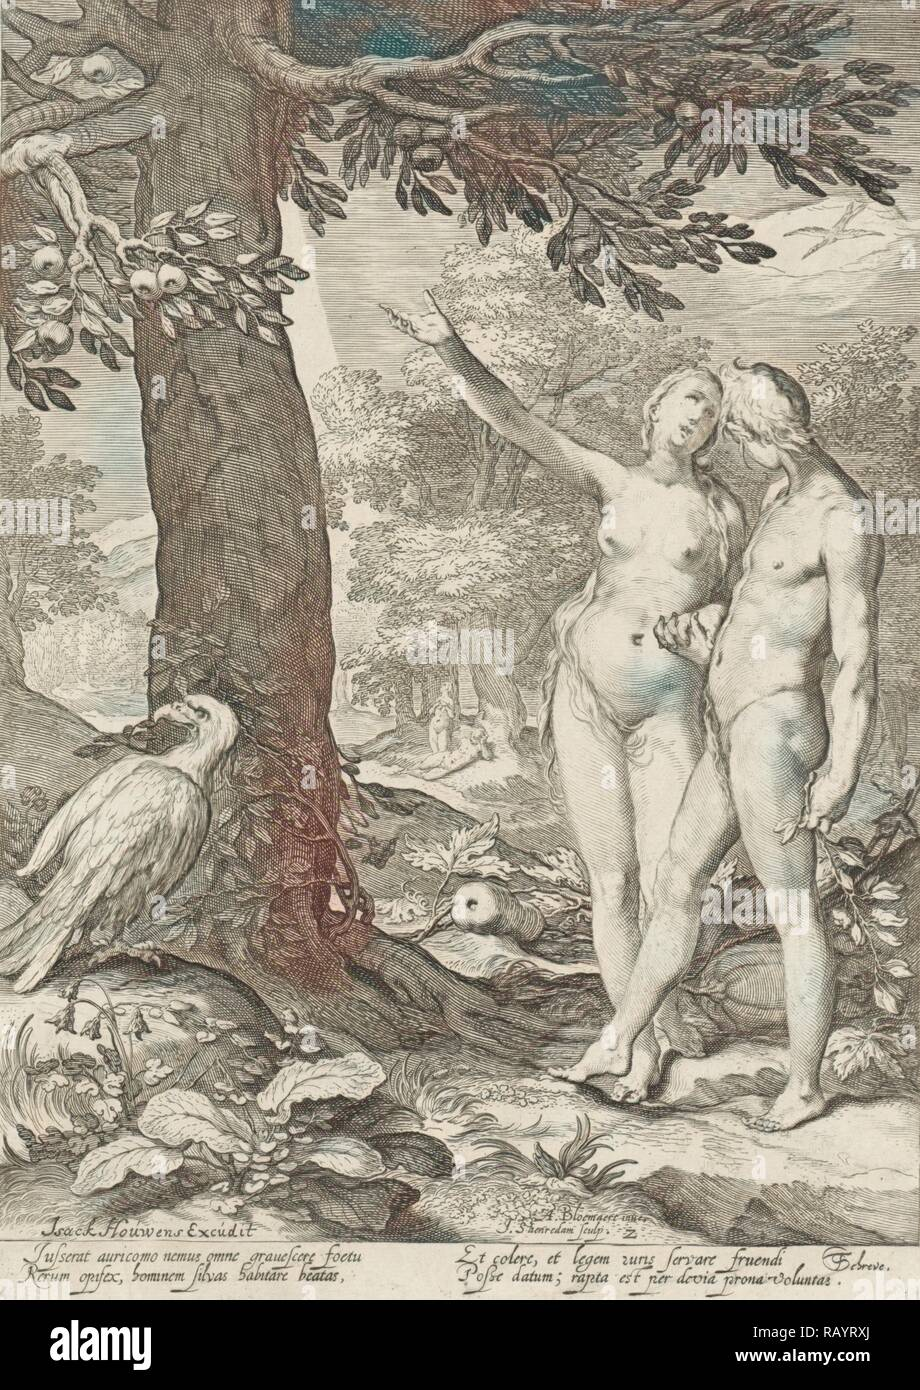 Adam and Eve before the Tree of Knowledge of Good and Evil, print maker: Jan Saenredam, Abraham Bloemaert, Isack reimagined - Stock Image